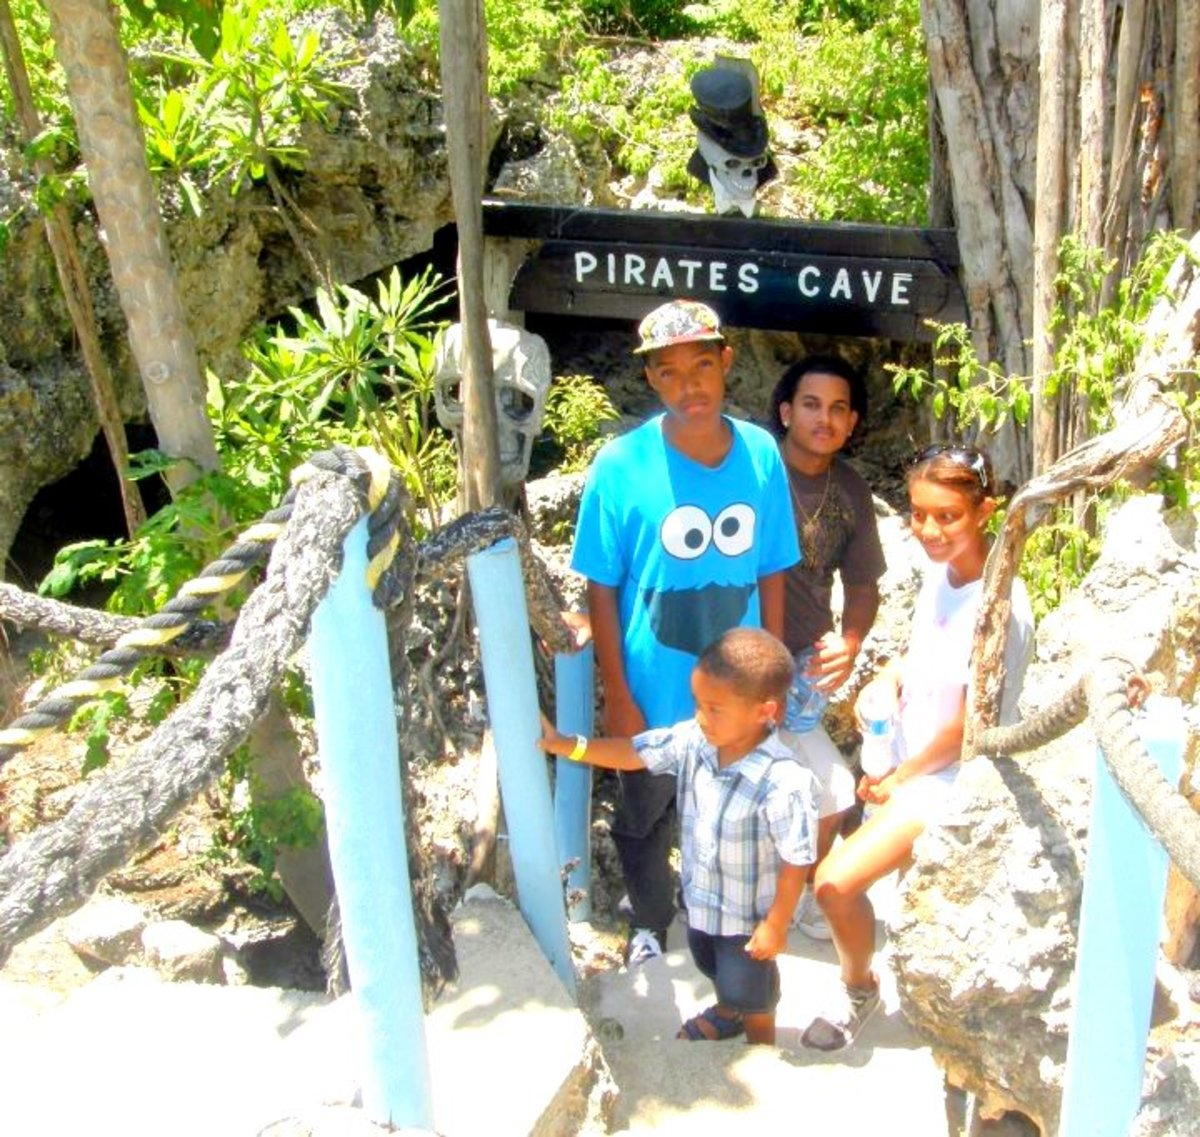 My kids, other family members and I embarked on a tour of the Pirates' Caves.